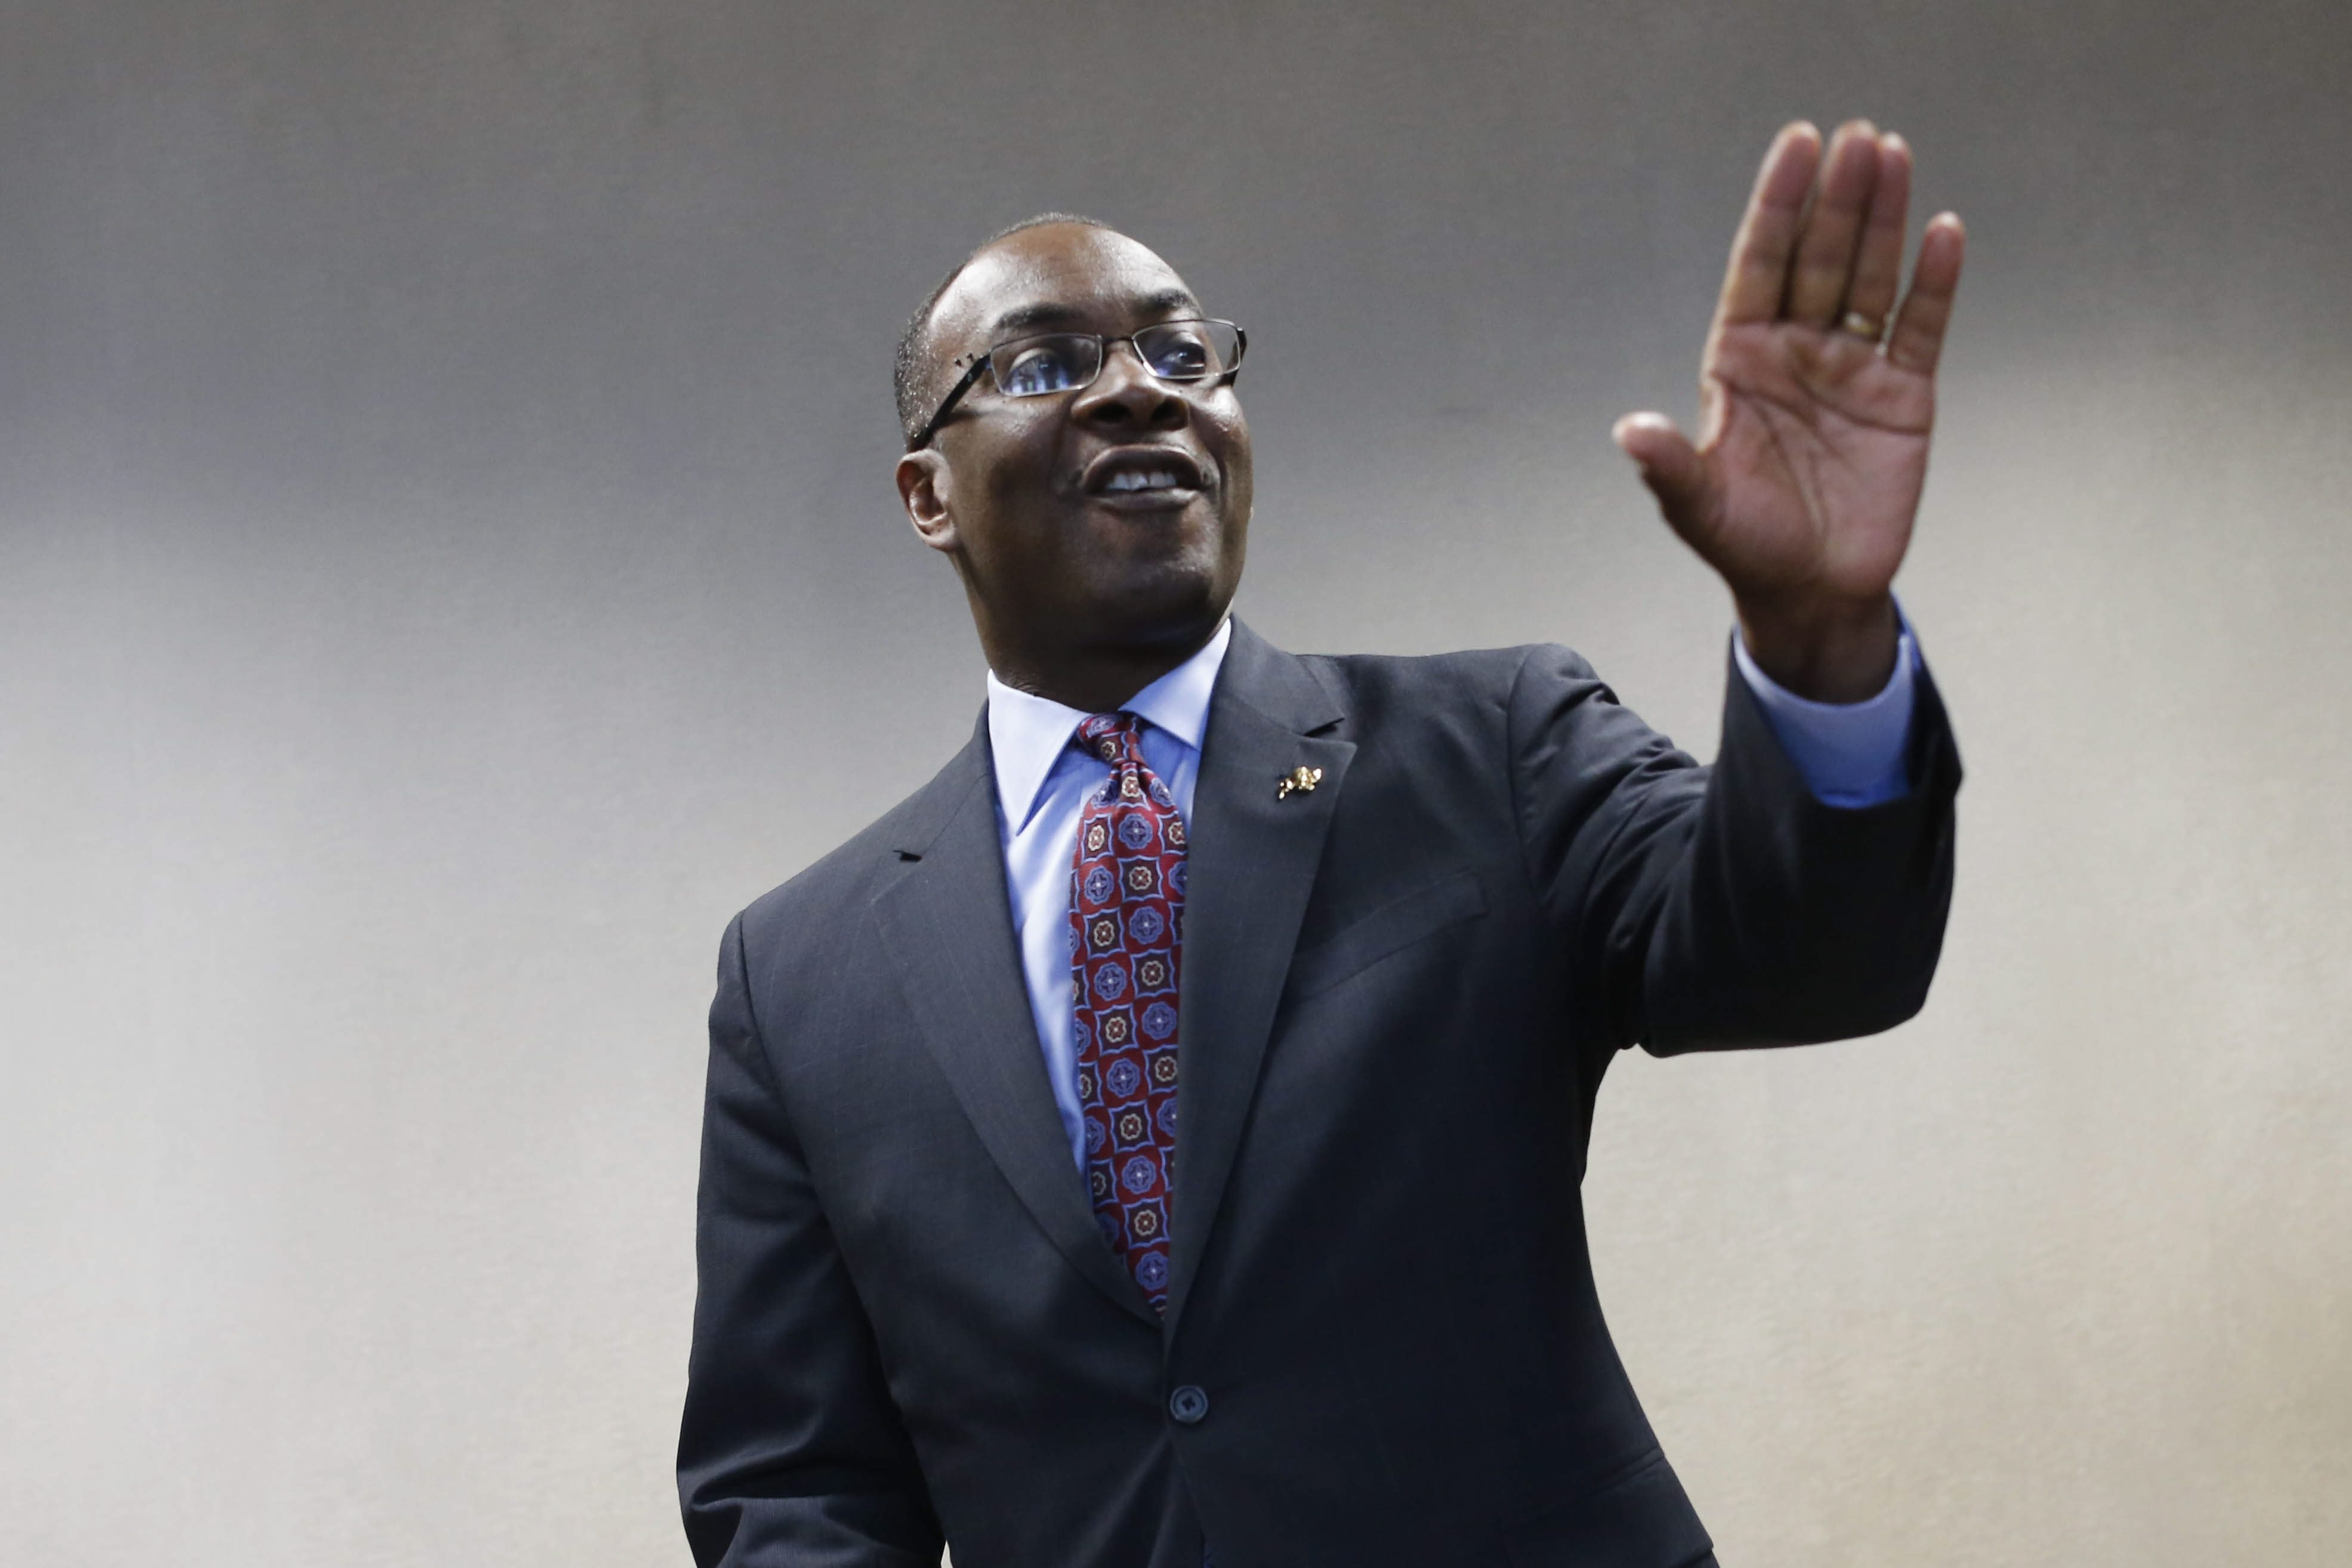 Buffalo Mayor Byron Brown waves as he arrives at a ceremony commemorating Yom Hashoah, or Holocaust Memorial Day, in the Rath County Office Building, Monday, April 25, 2016.  (Derek Gee/Buffalo News)